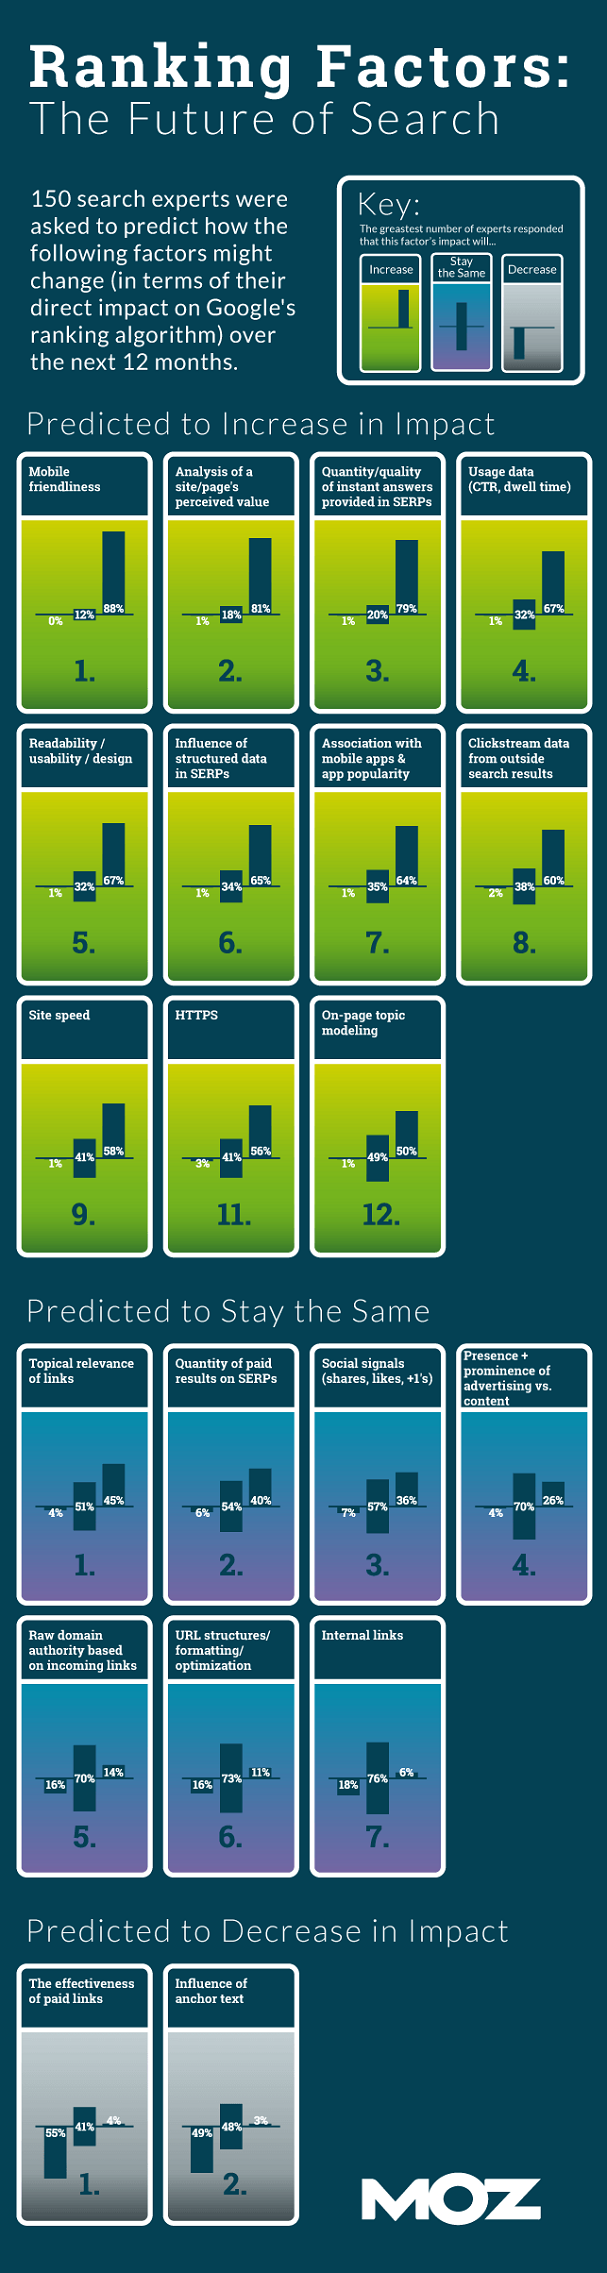 futureofsearch-survey-results-moz